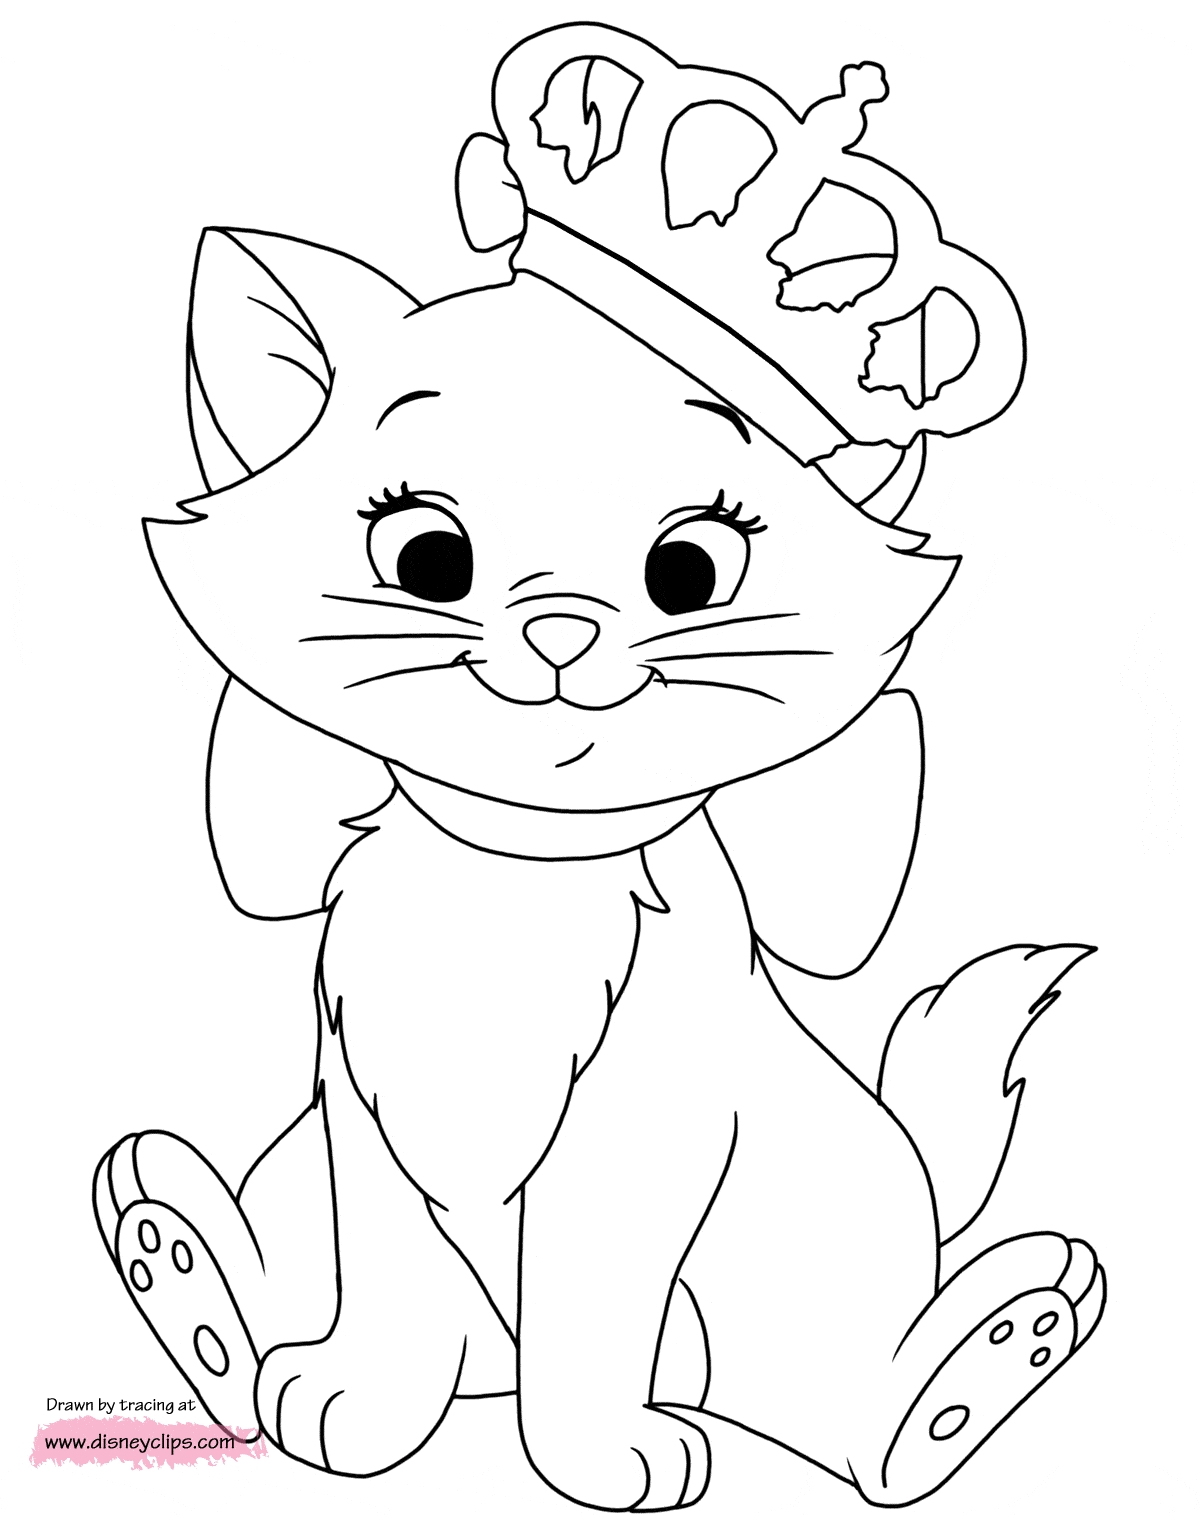 aristocats coloring pages - marie aristocats coloring pages sketch templates